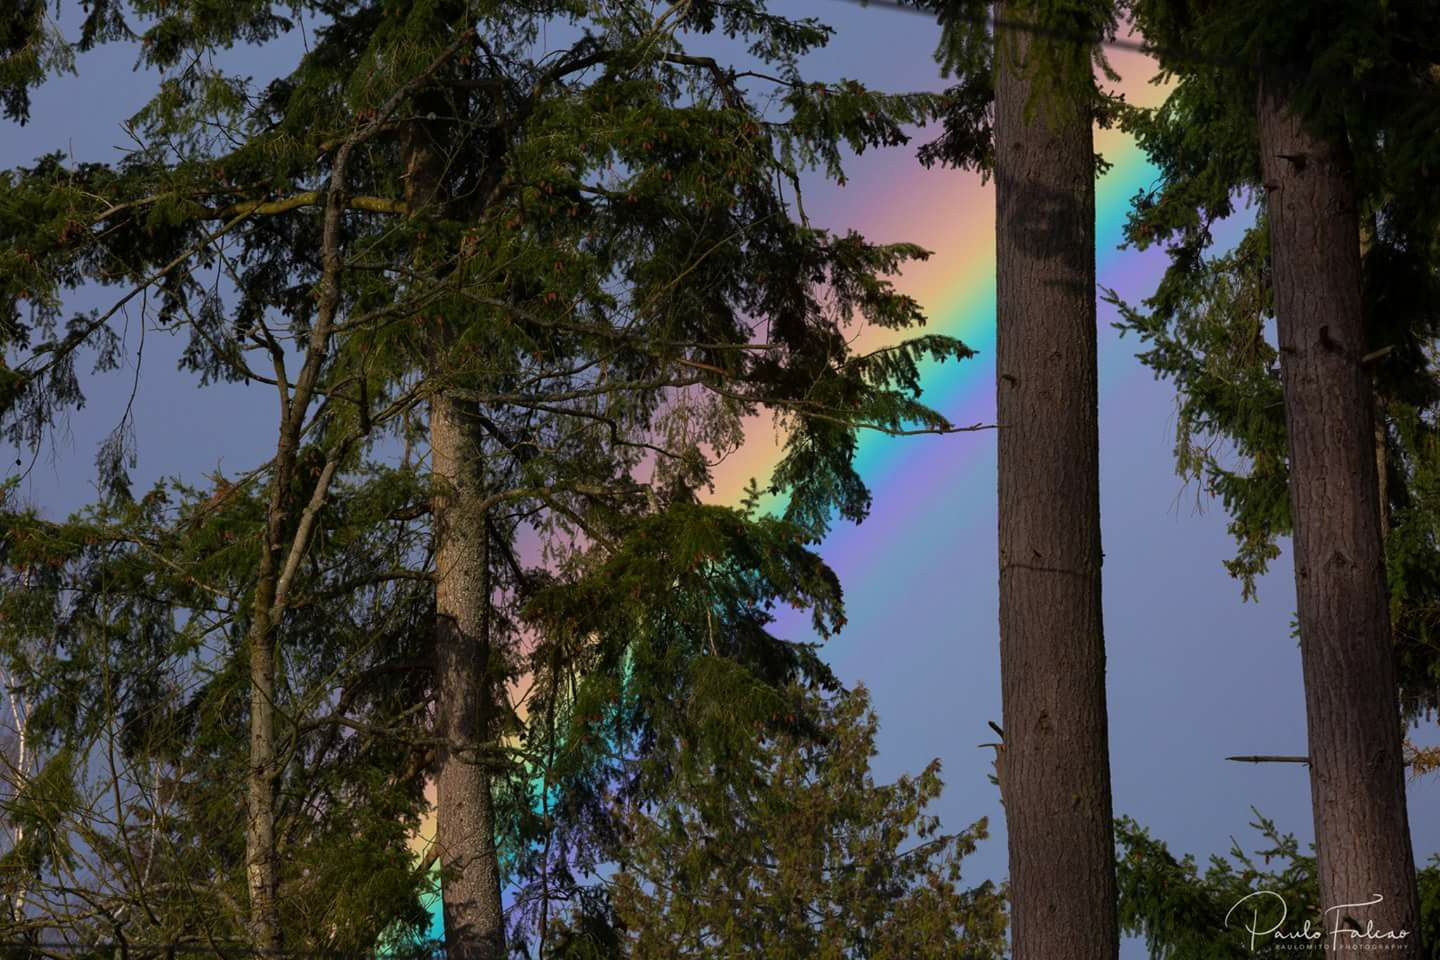 A rainbow is hidden in the trees in Lynnwood, Wash., Tuesday, April 18, 2017. (Photo: Poulomito Photography)